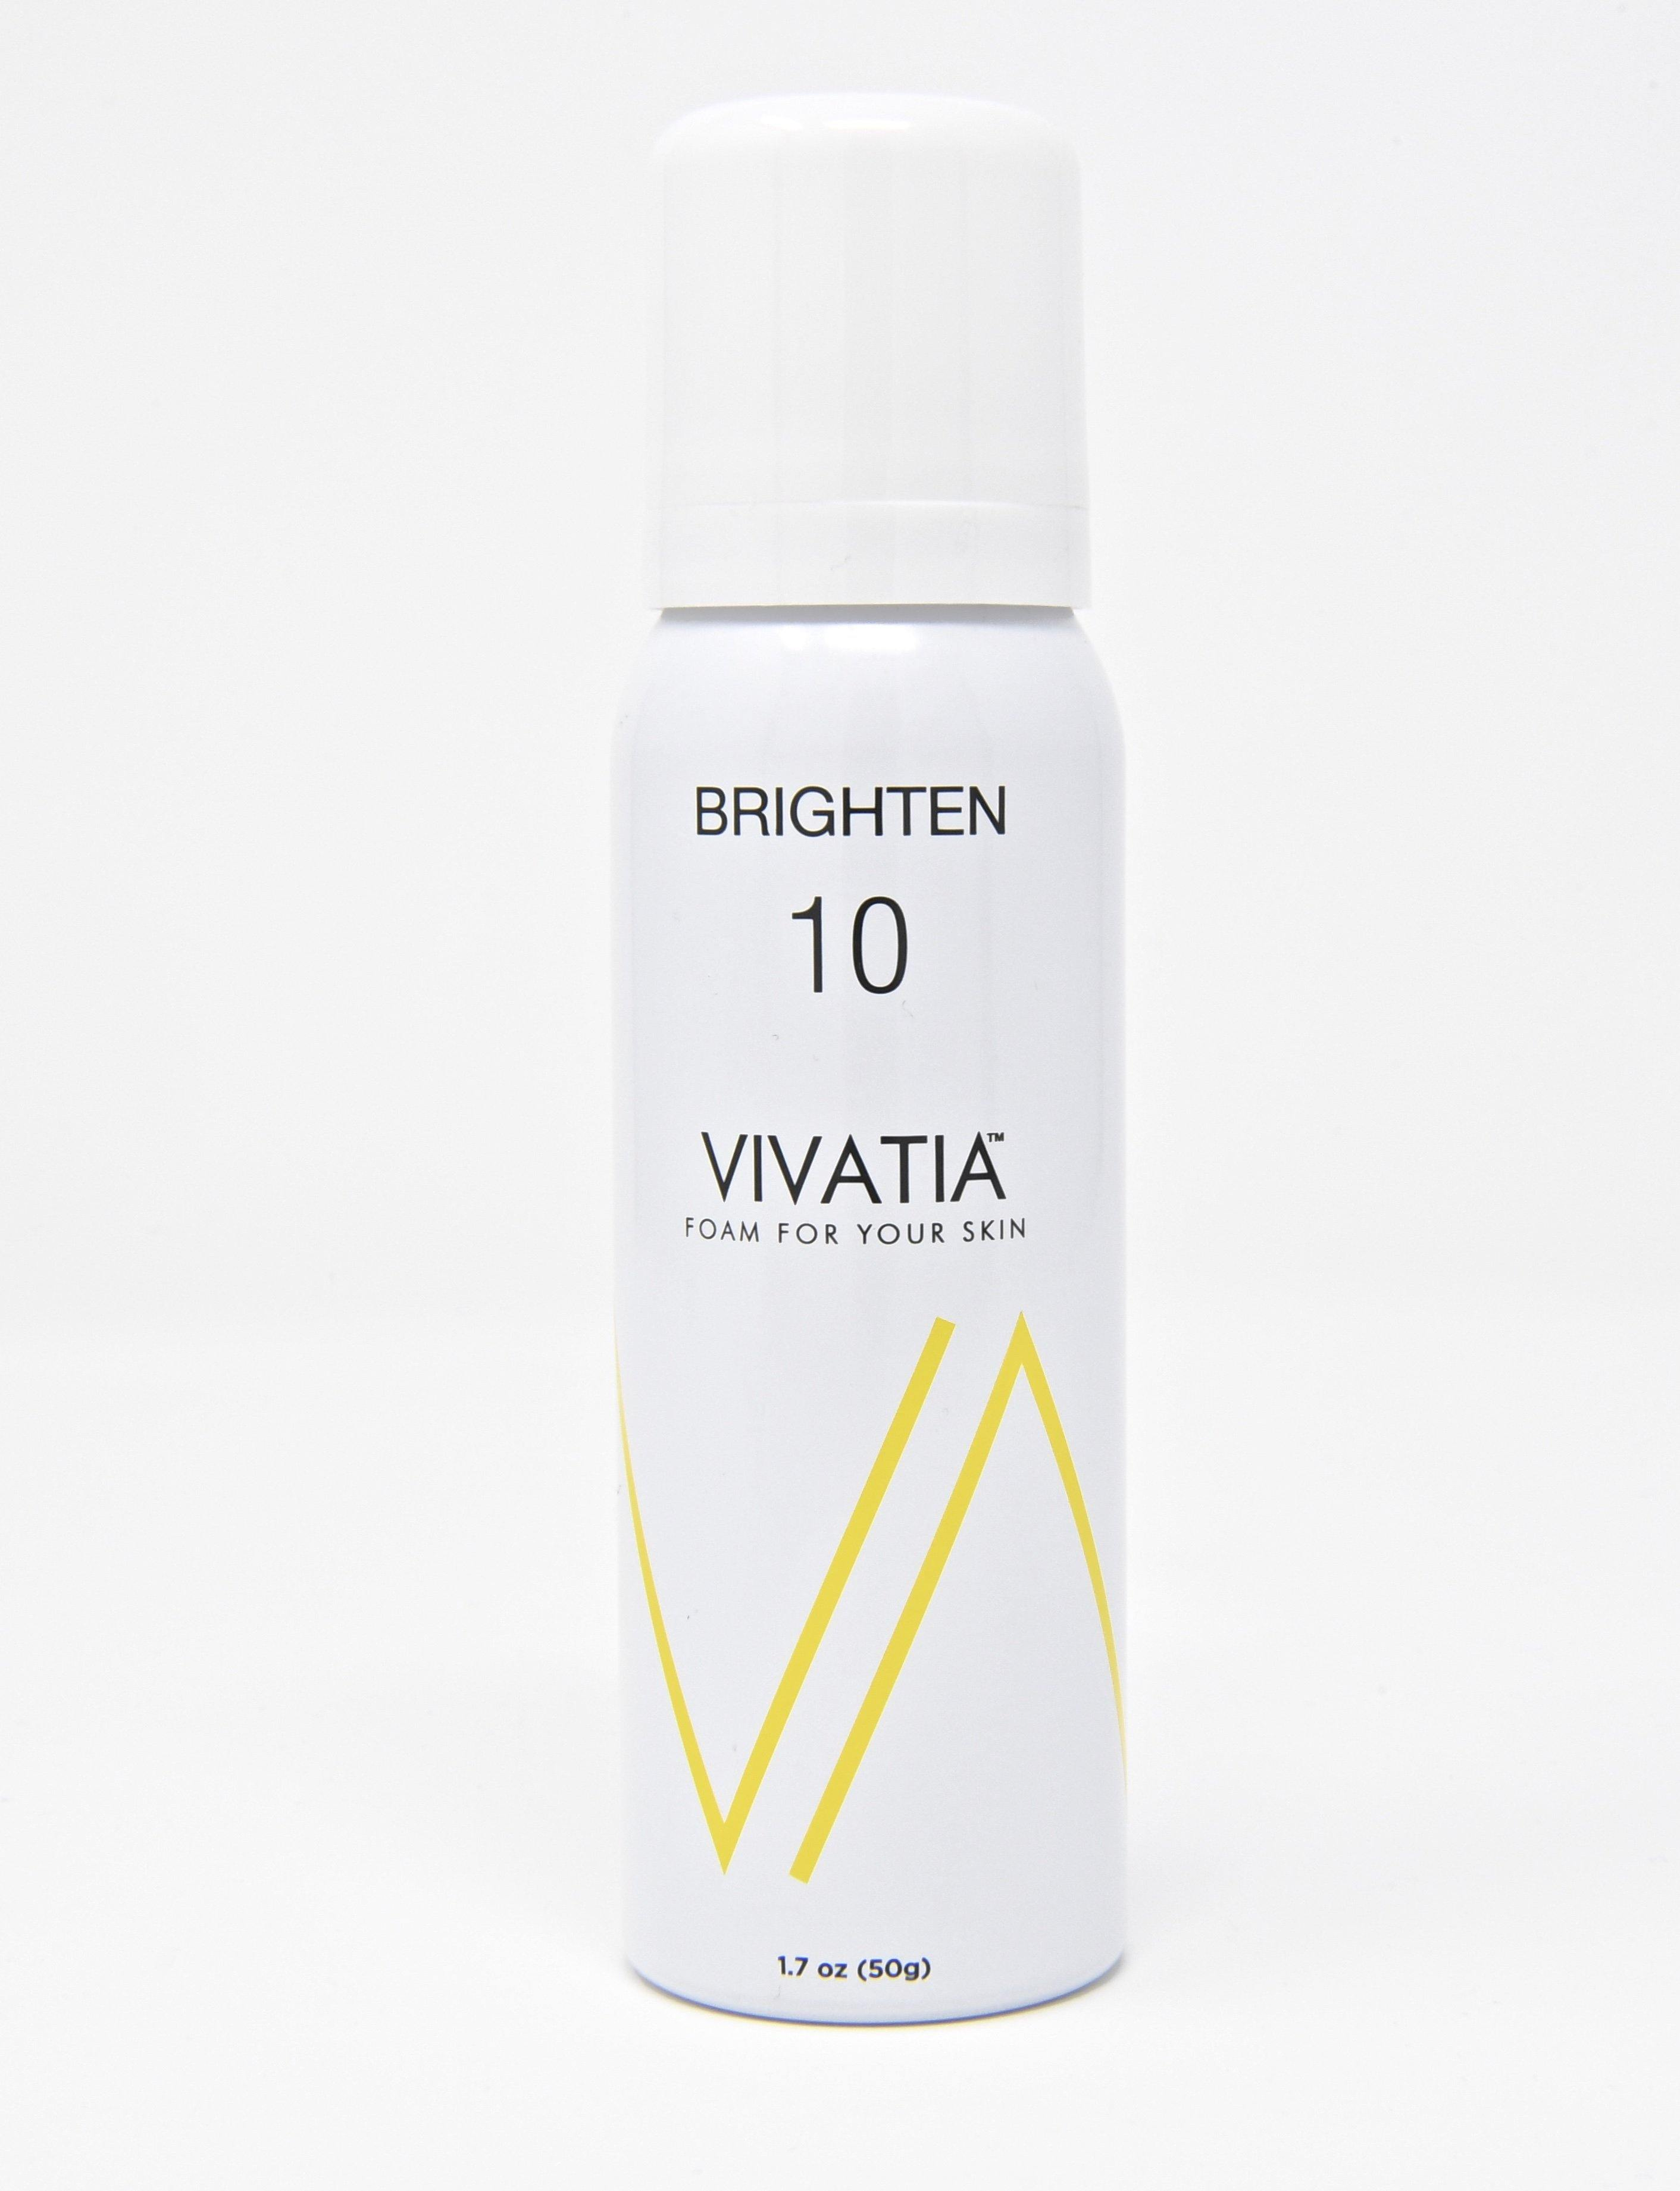 Vivatia - Brighten 10 - Emerage Cosmetics